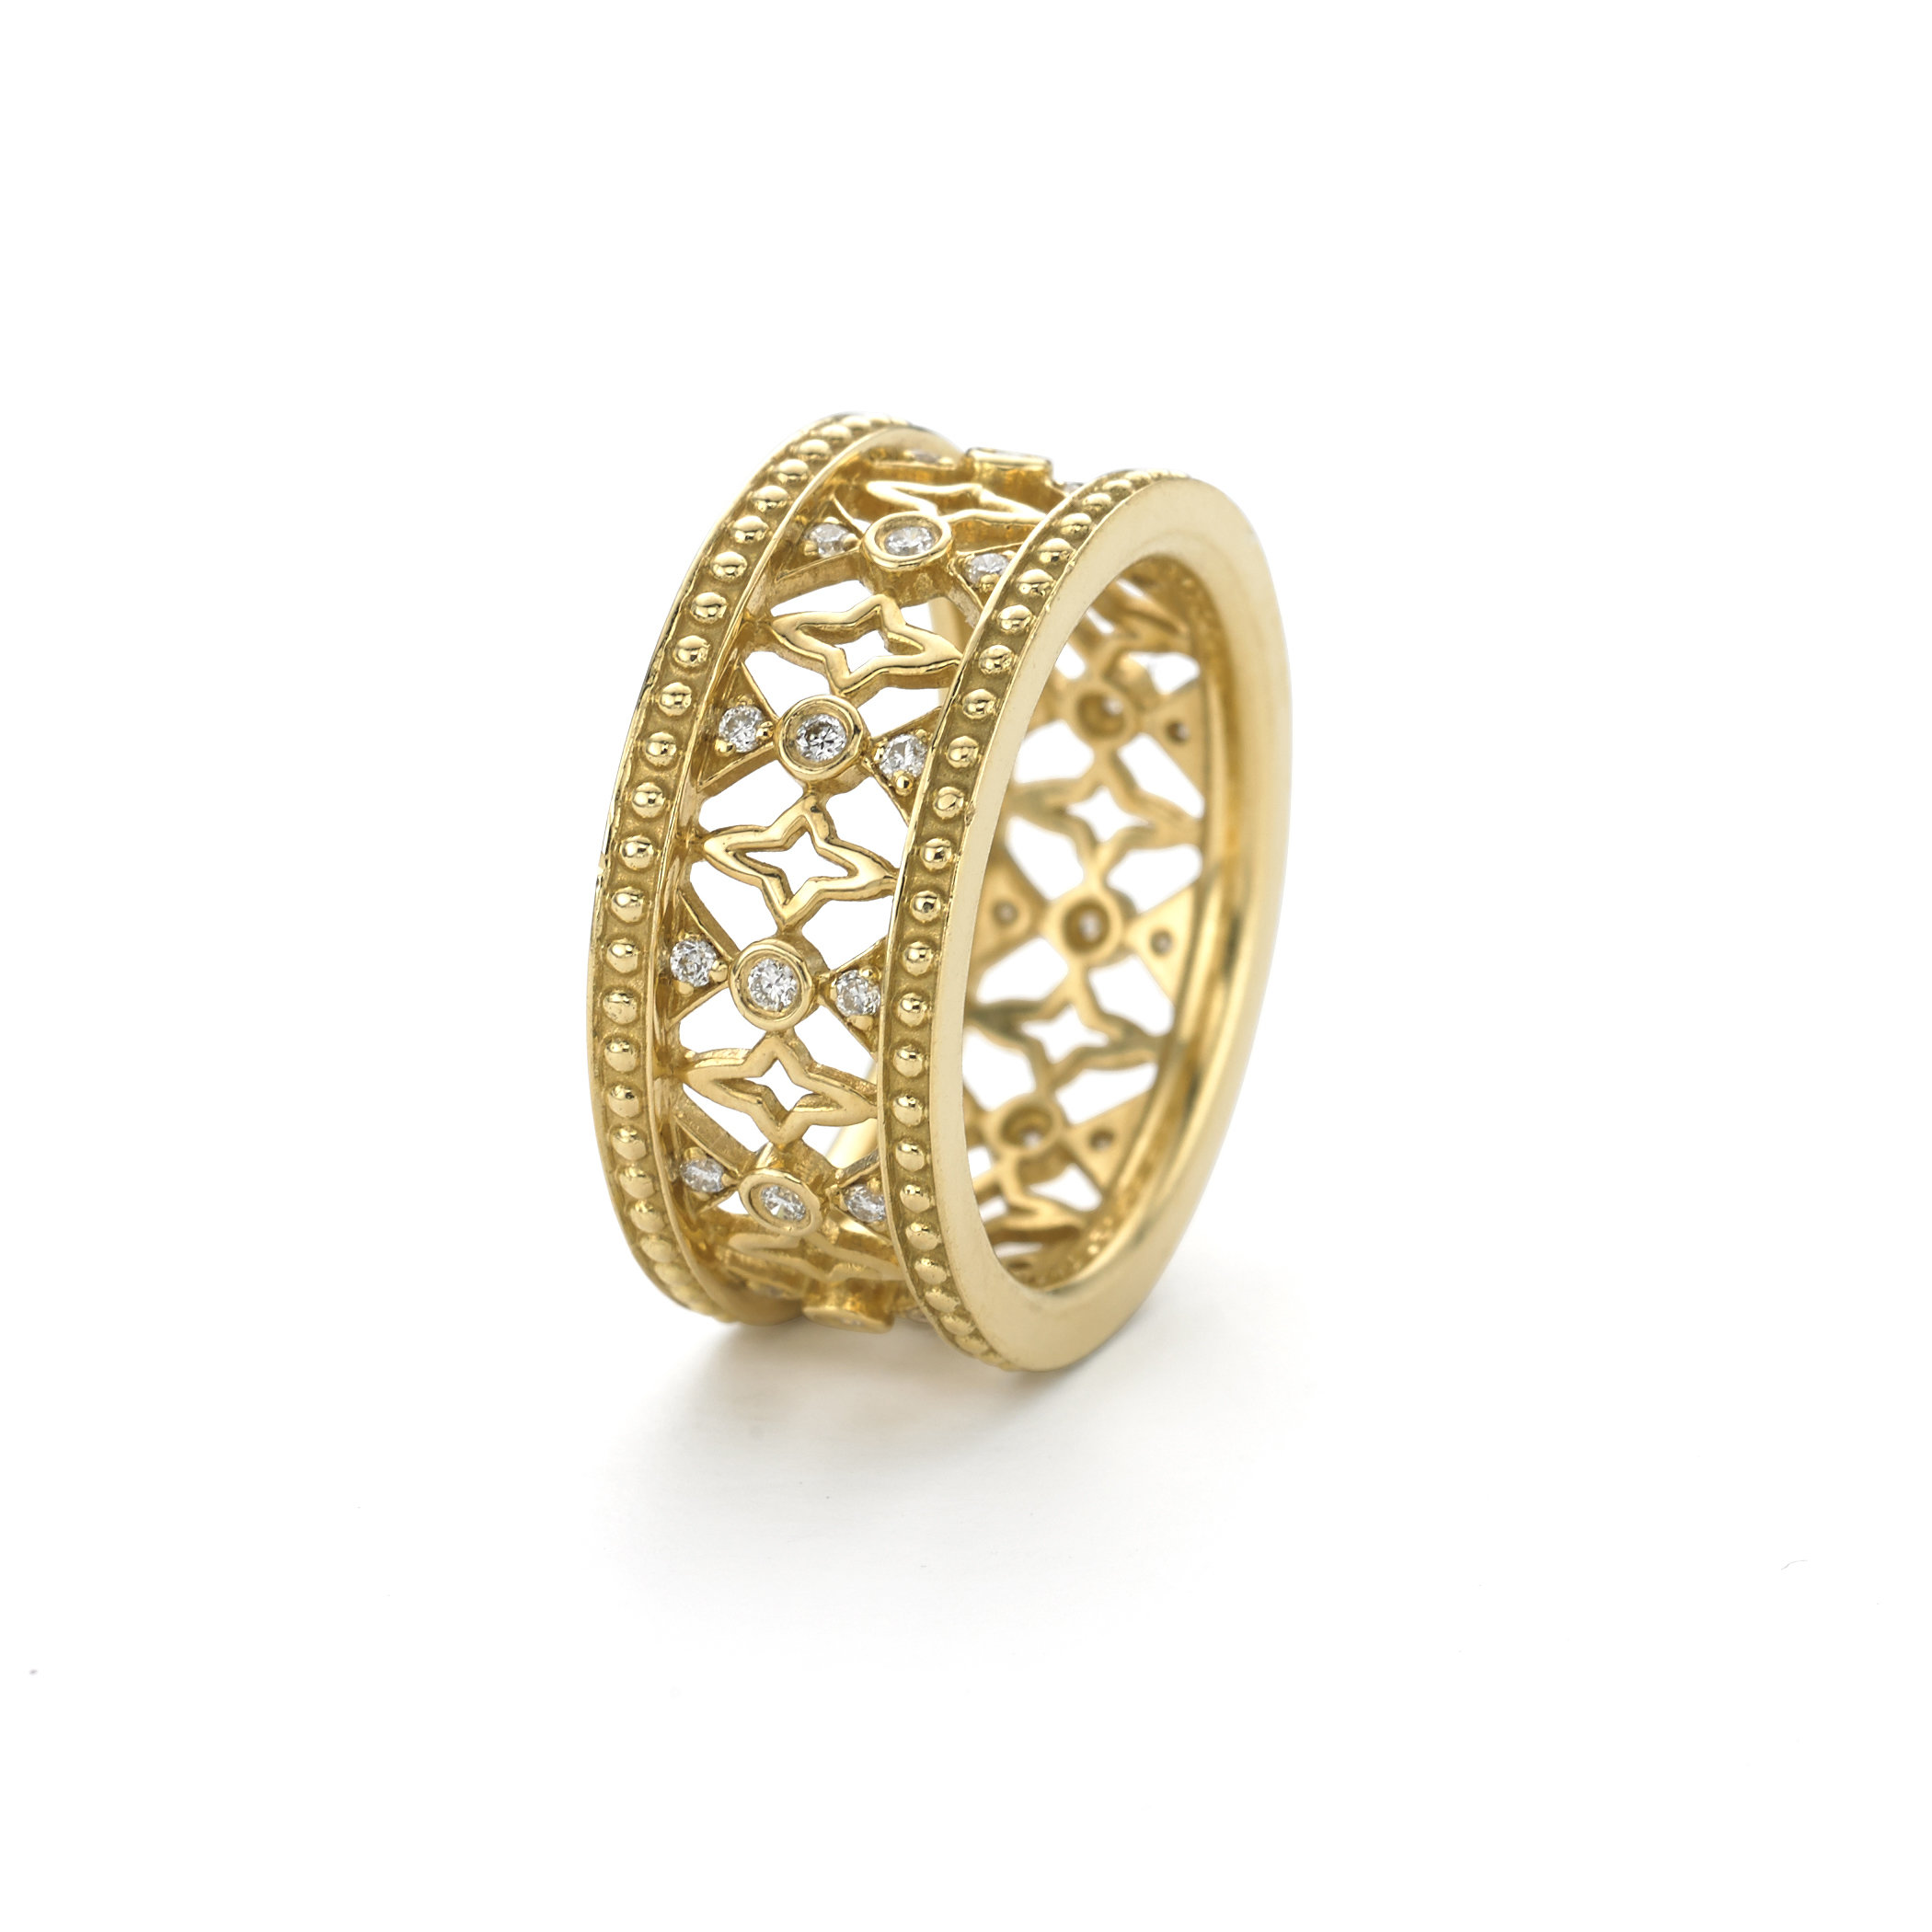 Katie Decker Baroque Beaded Edge Diamond Band, Fashioned in 18K Yellow Gold, Featuring Round Diamonds =.22cts Total Weight